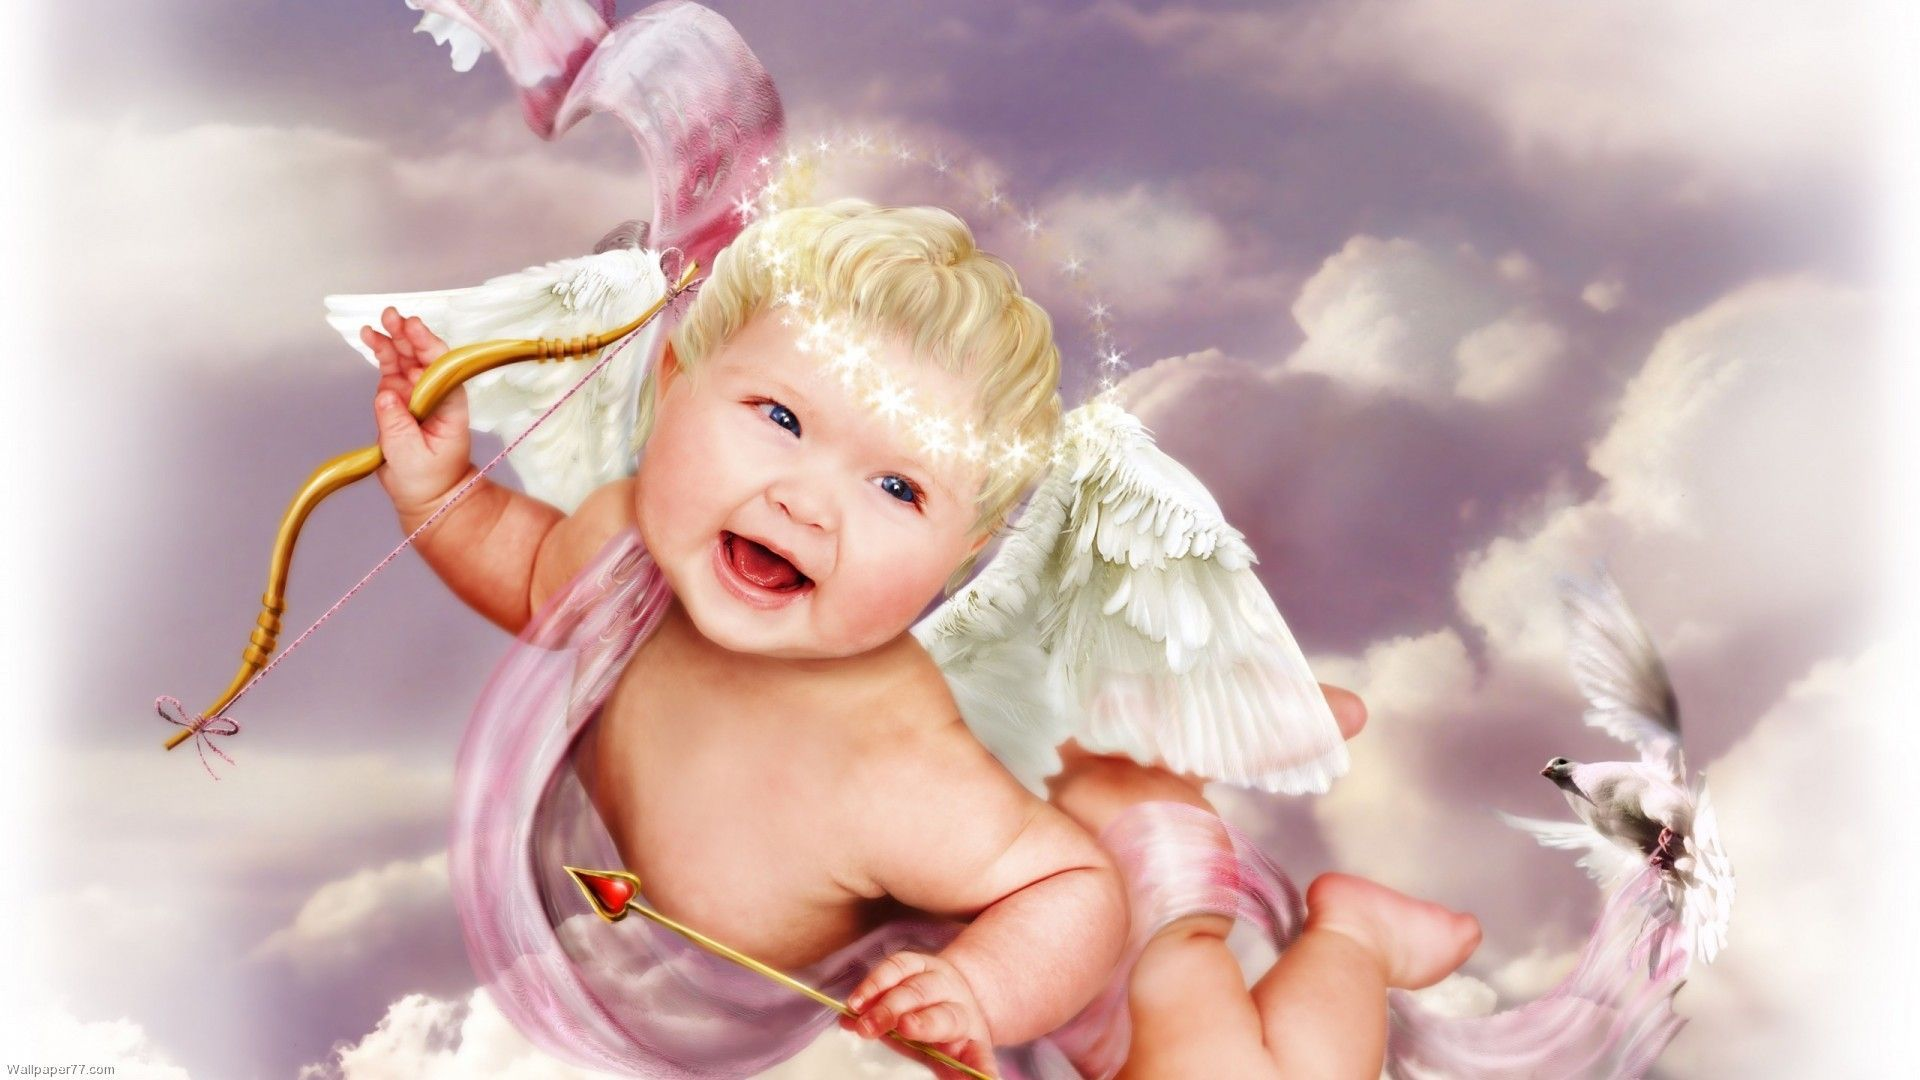 30 Baby Valentine Wallpapers   Download at WallpaperBro 1920x1080